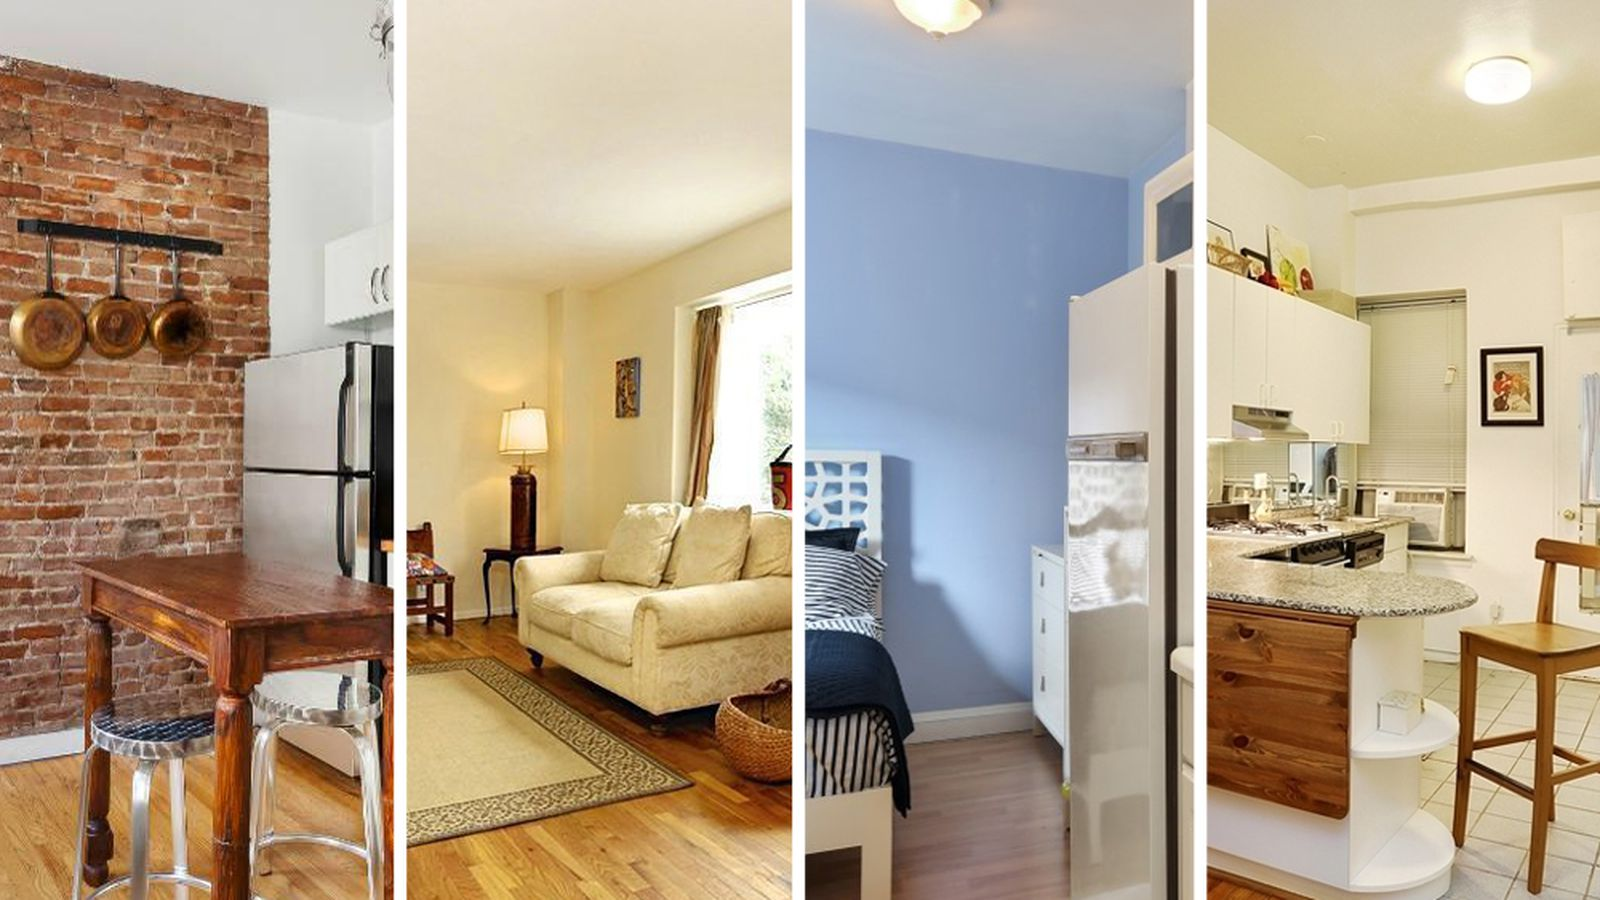 The cheapest apartments for sale in new york 39 s priciest for Apartments for sale in new york